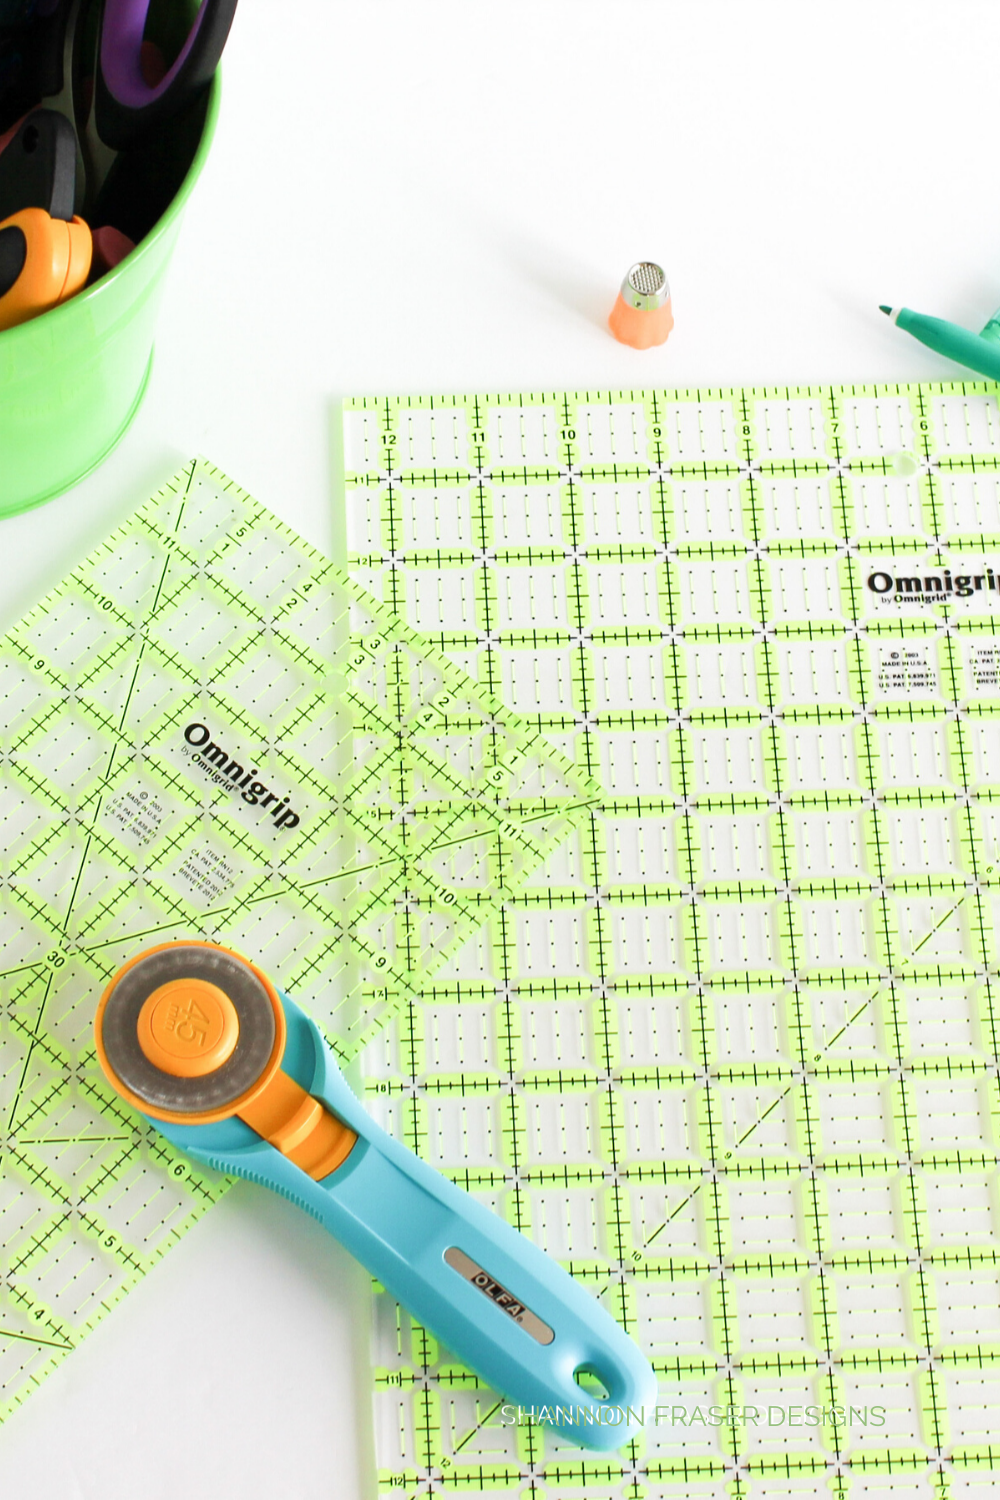 Olfa Splash rotary cutter on a pair of Omnigrid quilting rulers | Shattered Star QAL Week 2 Part 2: How to cut fabric | Shannon Fraser Designs #notions